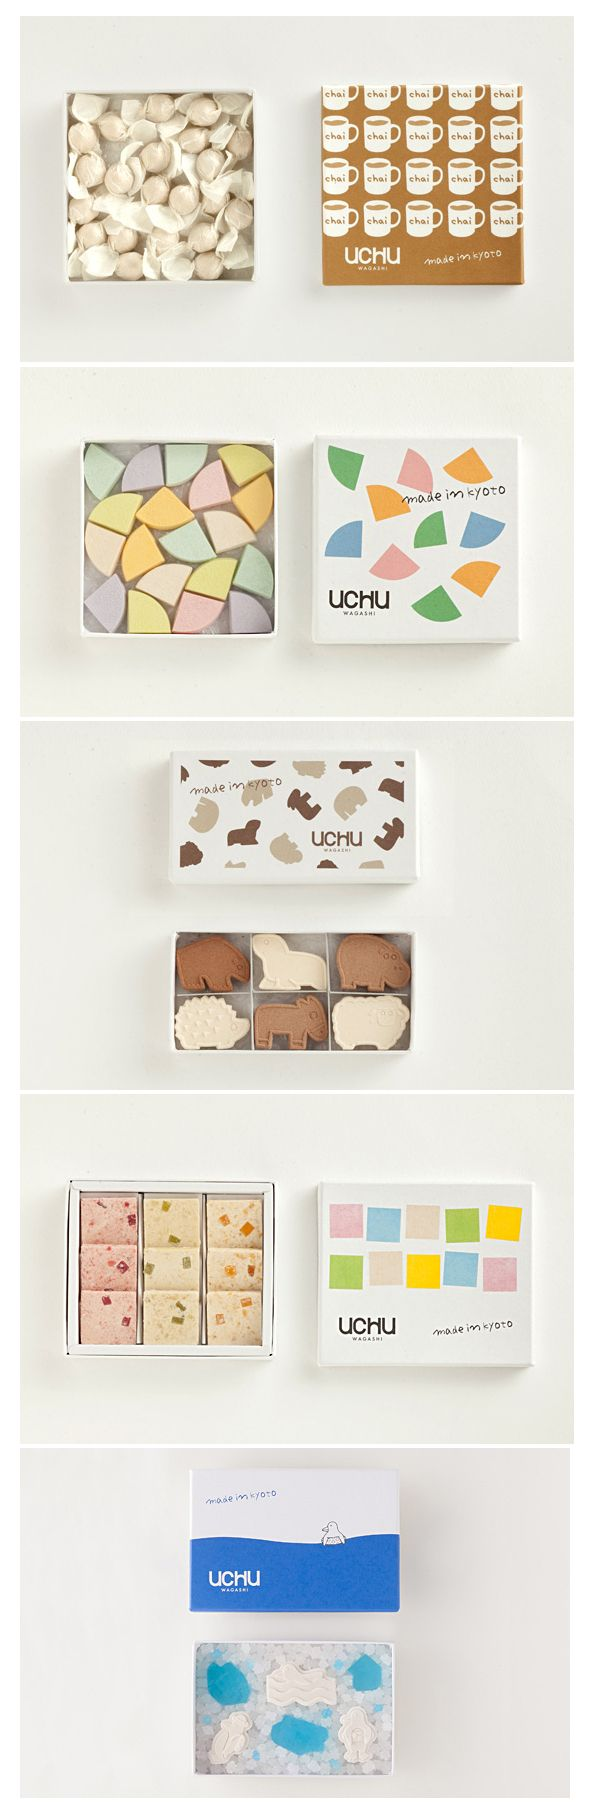 Design packaging packaging specialist packaging - More Uchu Wagashi Yummy Eats Packaging Adriana Pd